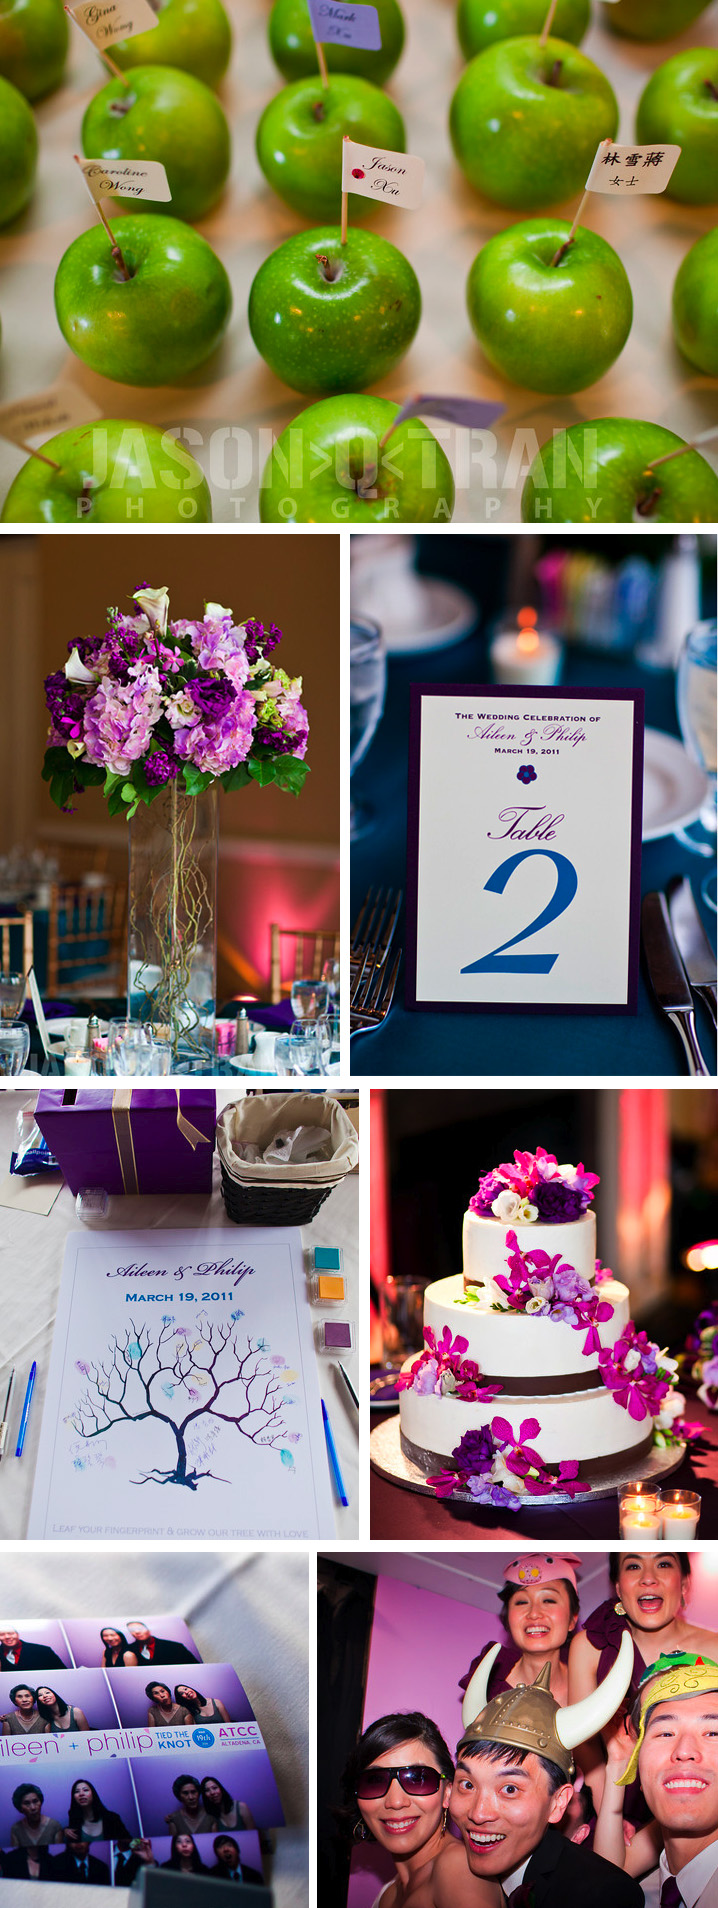 Wedding reception design details